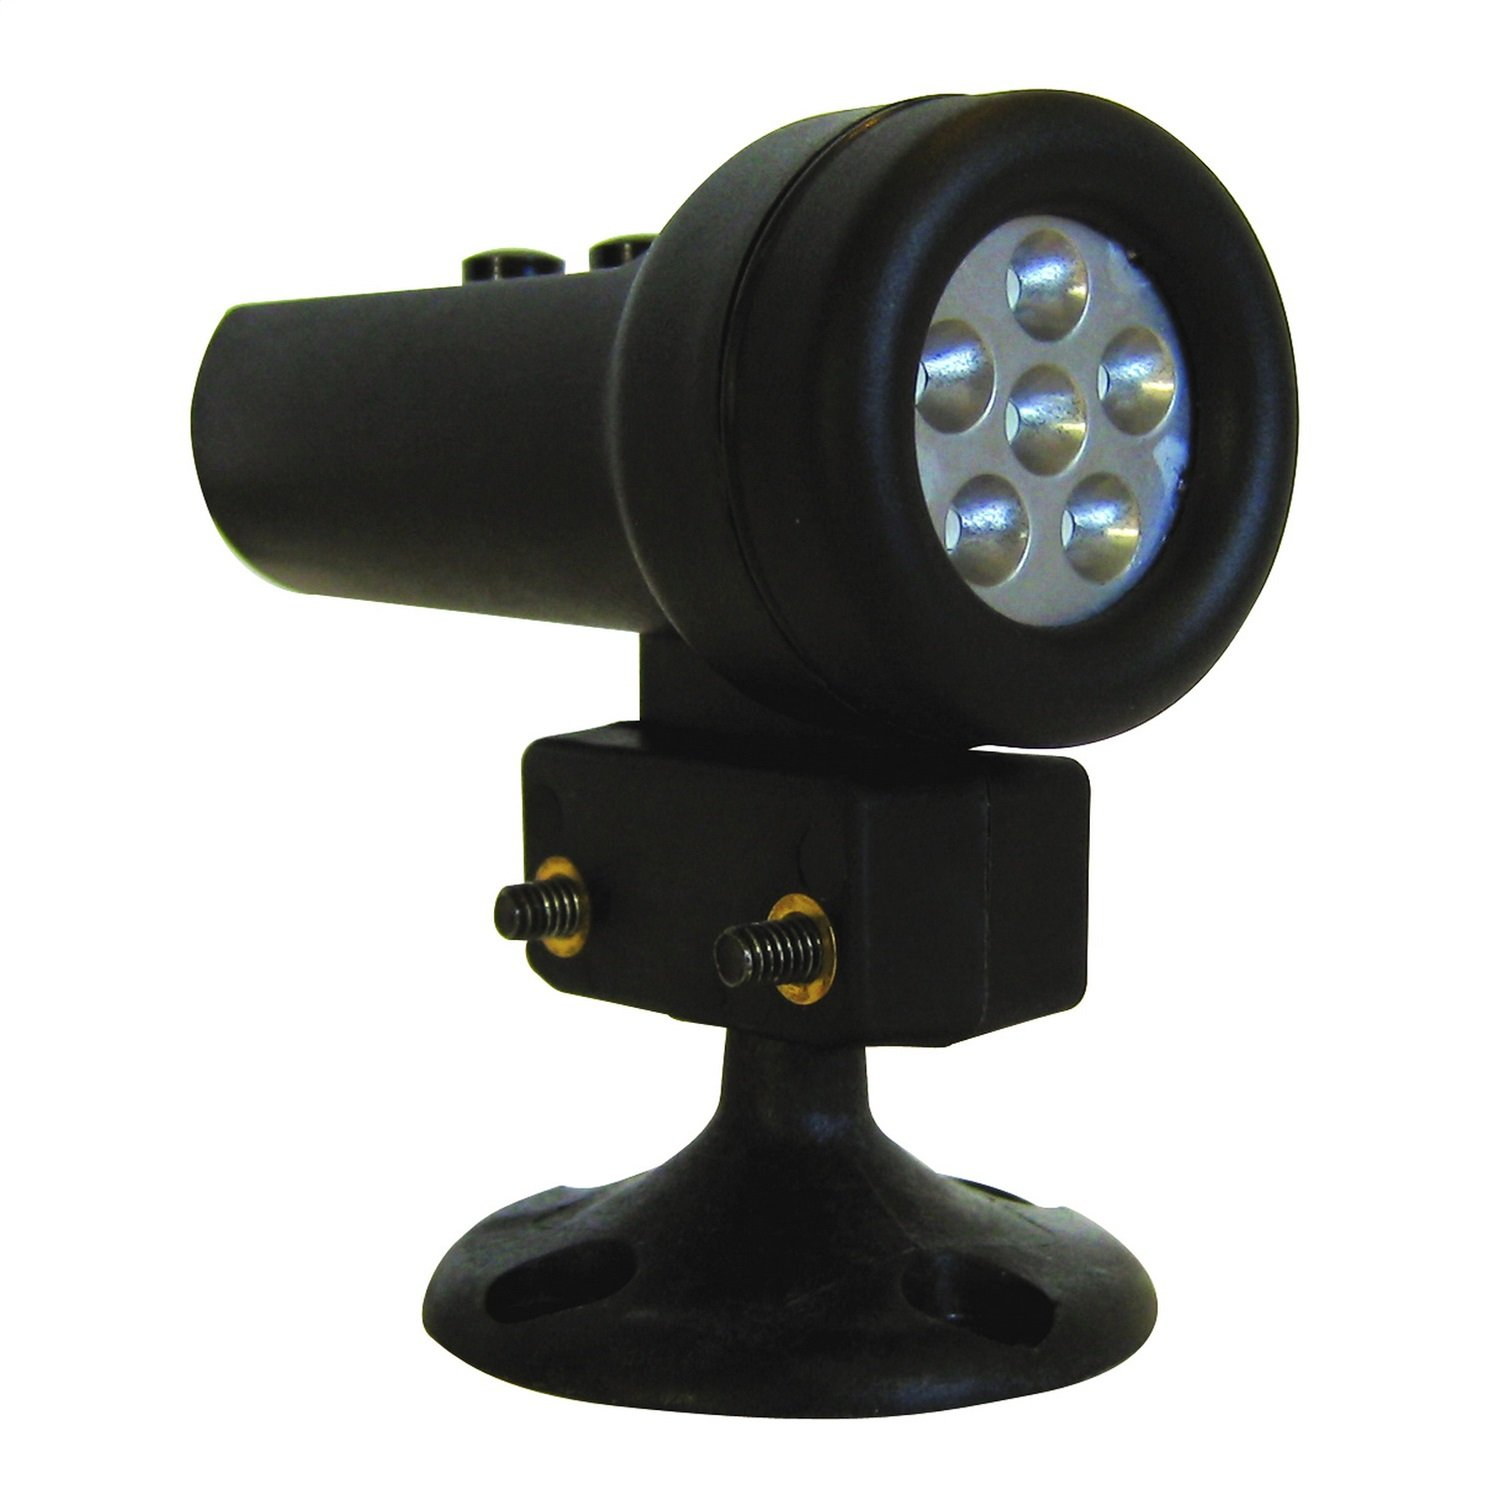 Auto Meter 5321 Black Mini Shift Light with Pedestal Mount and 5 Red LED (for Race Use)